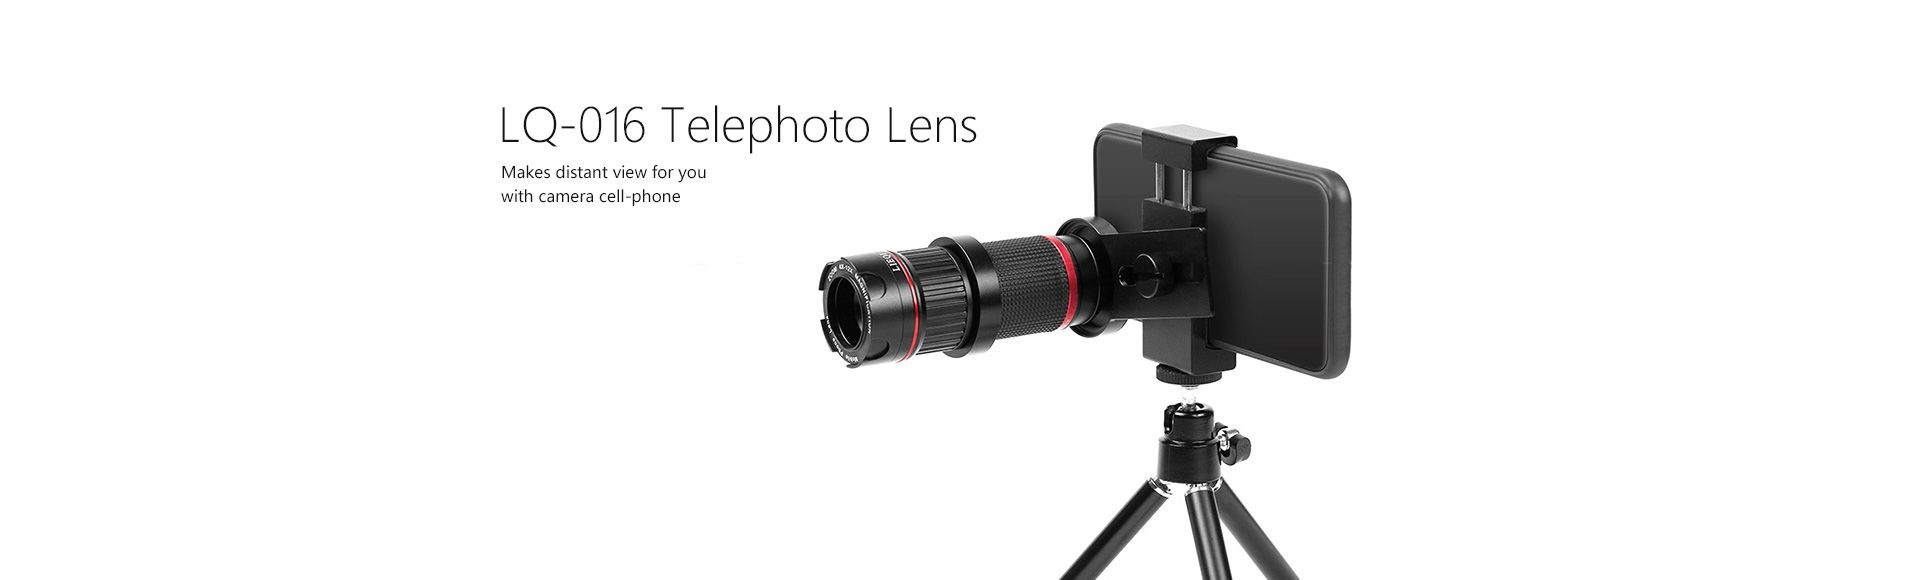 LIEQI-016 Telephoto Lens - 4-12x zoom lens external camera for mobile phone